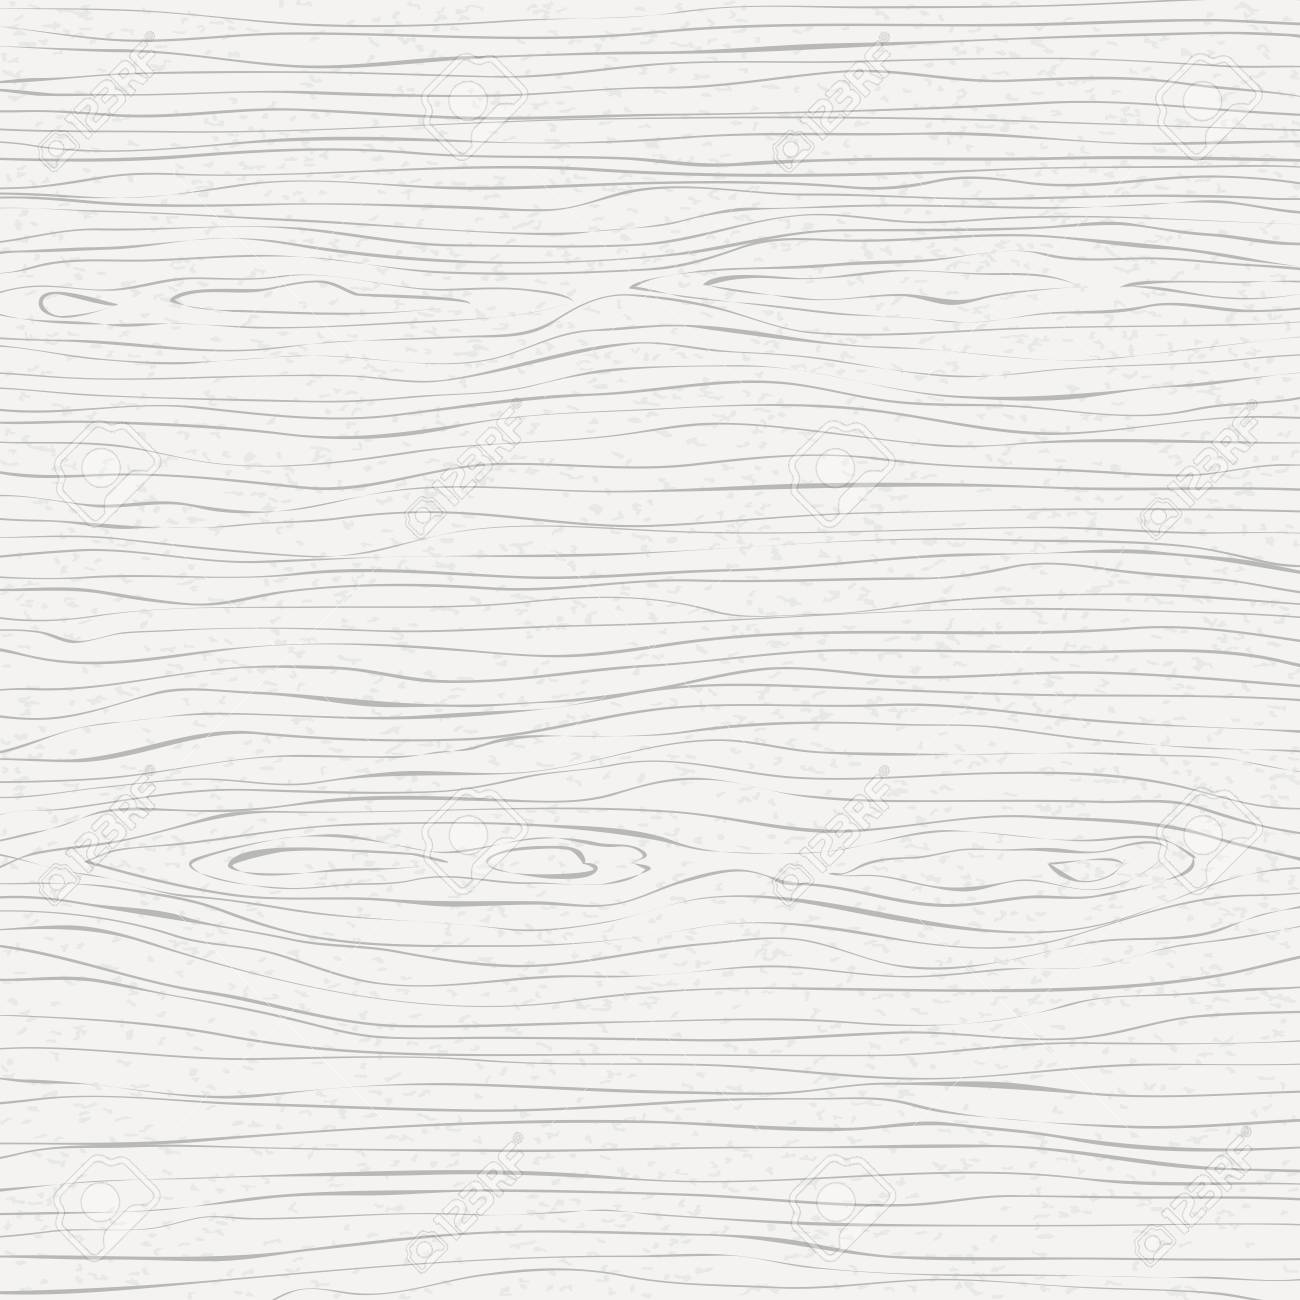 White wooden cutting, chopping board, table or floor surface. Wood texture. Vector illustration. - 122819531